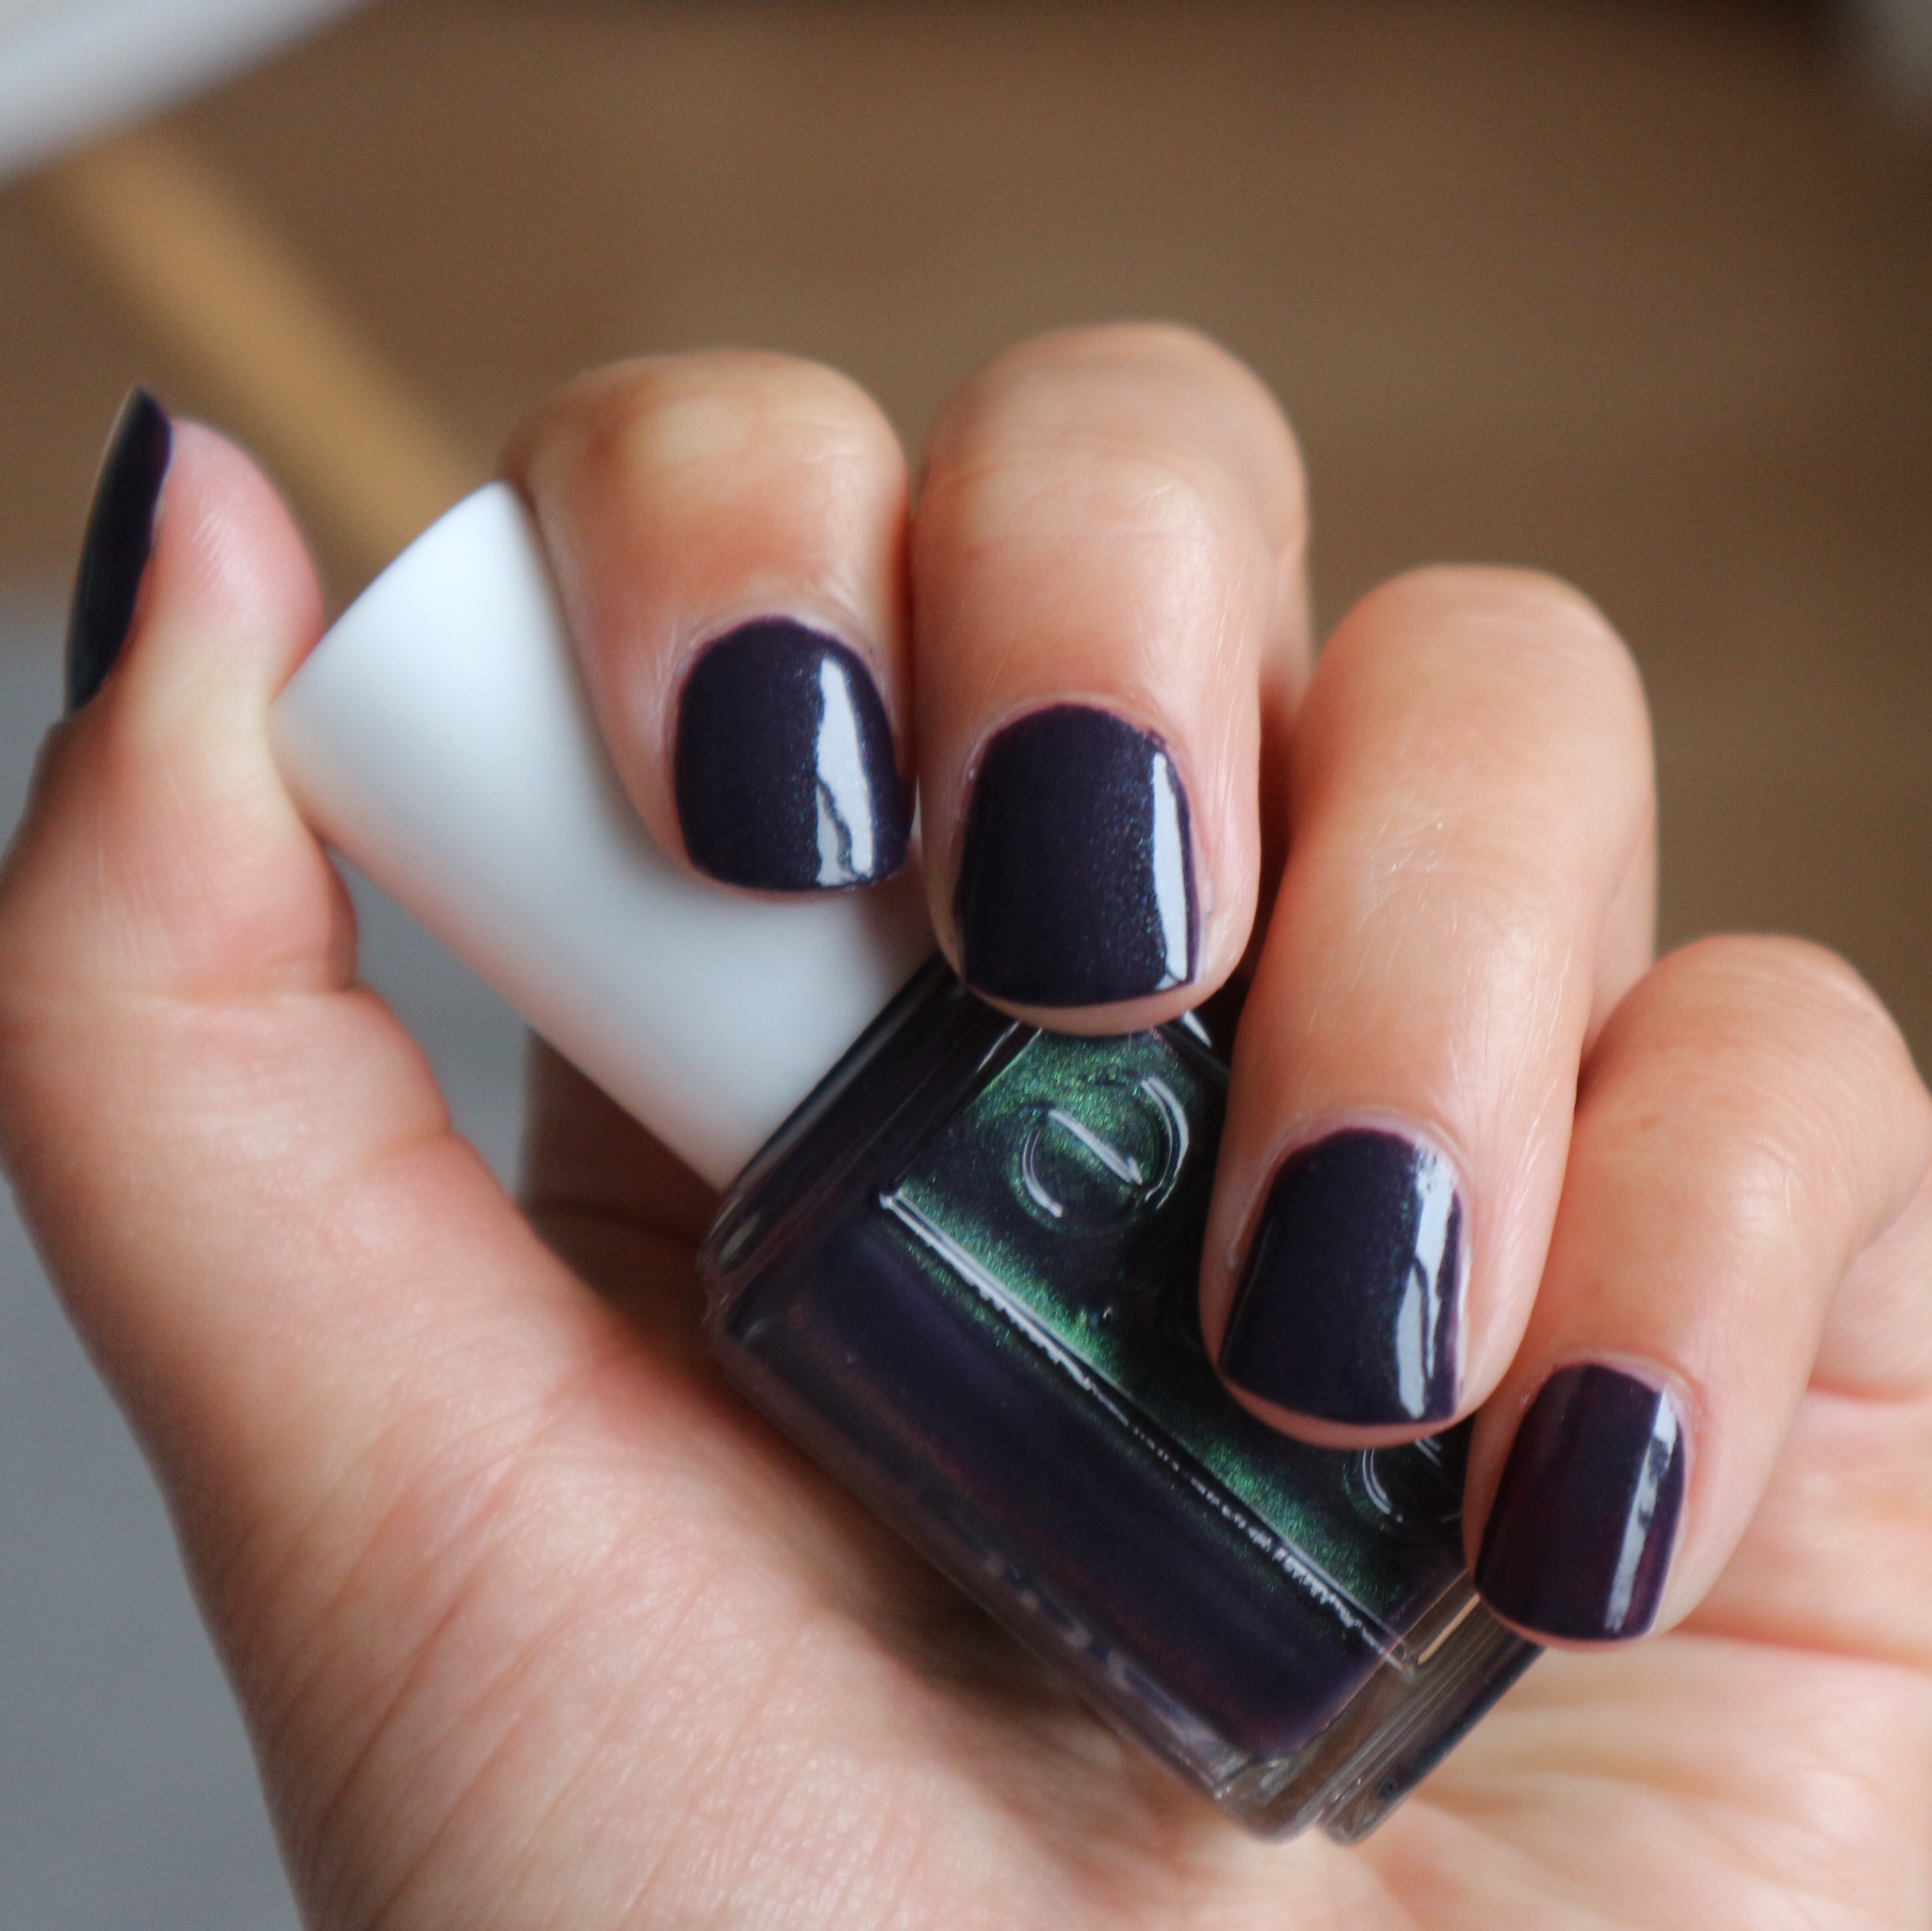 Essie Fall 2017 Dressed to the nineties